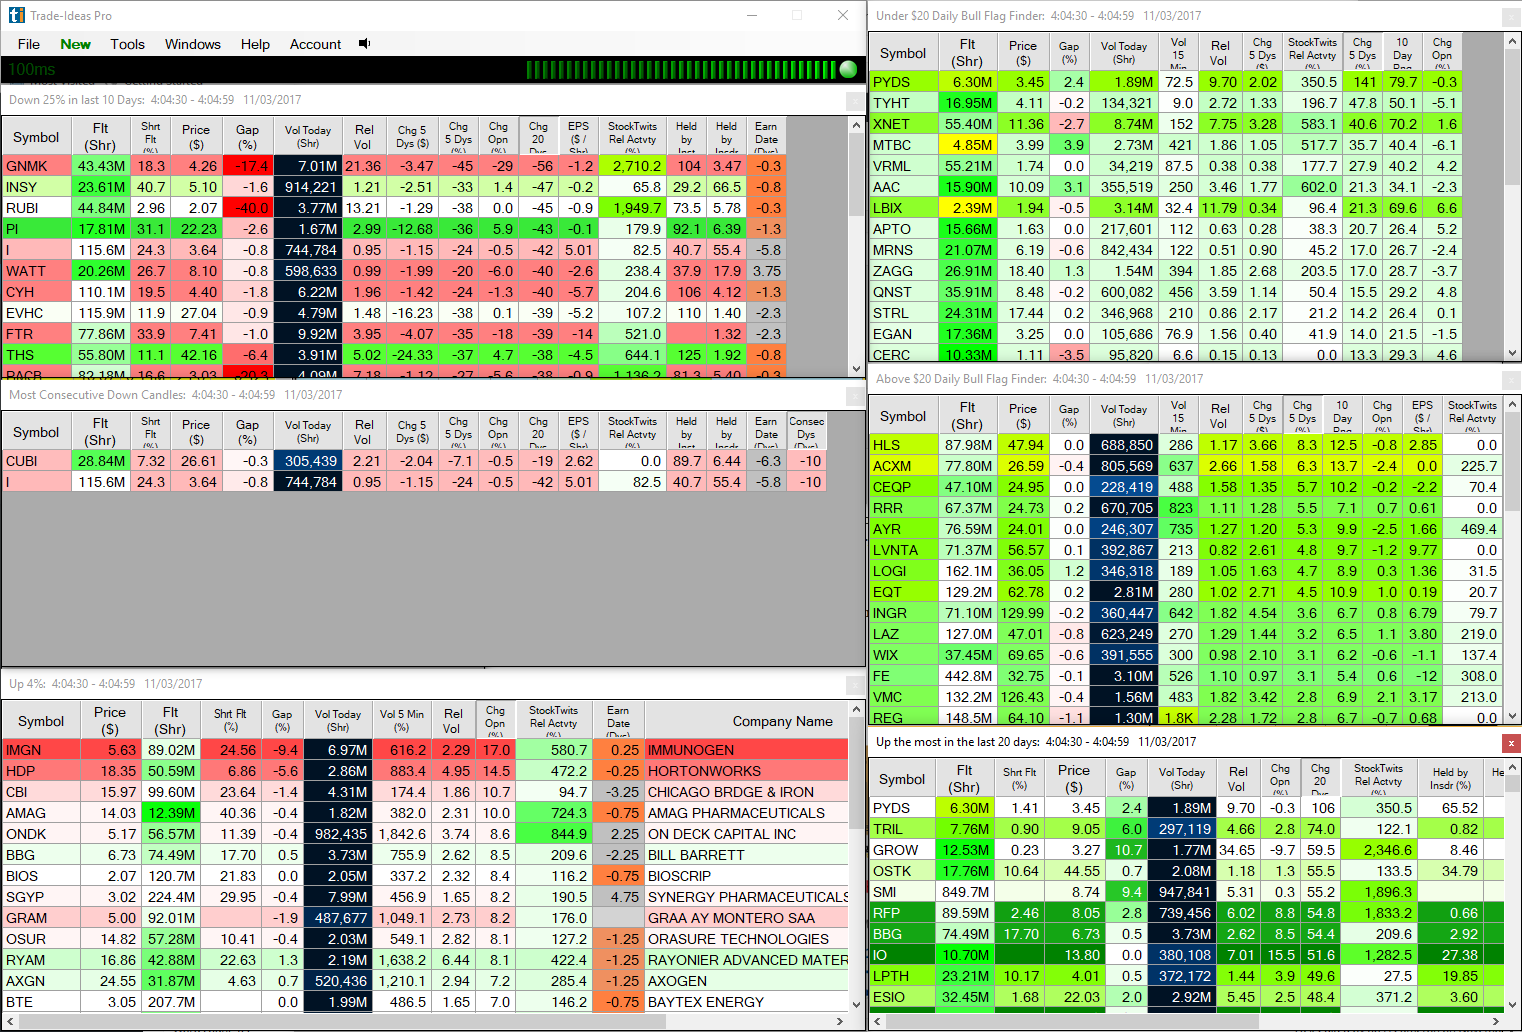 Trade Ideas Stock Scanner